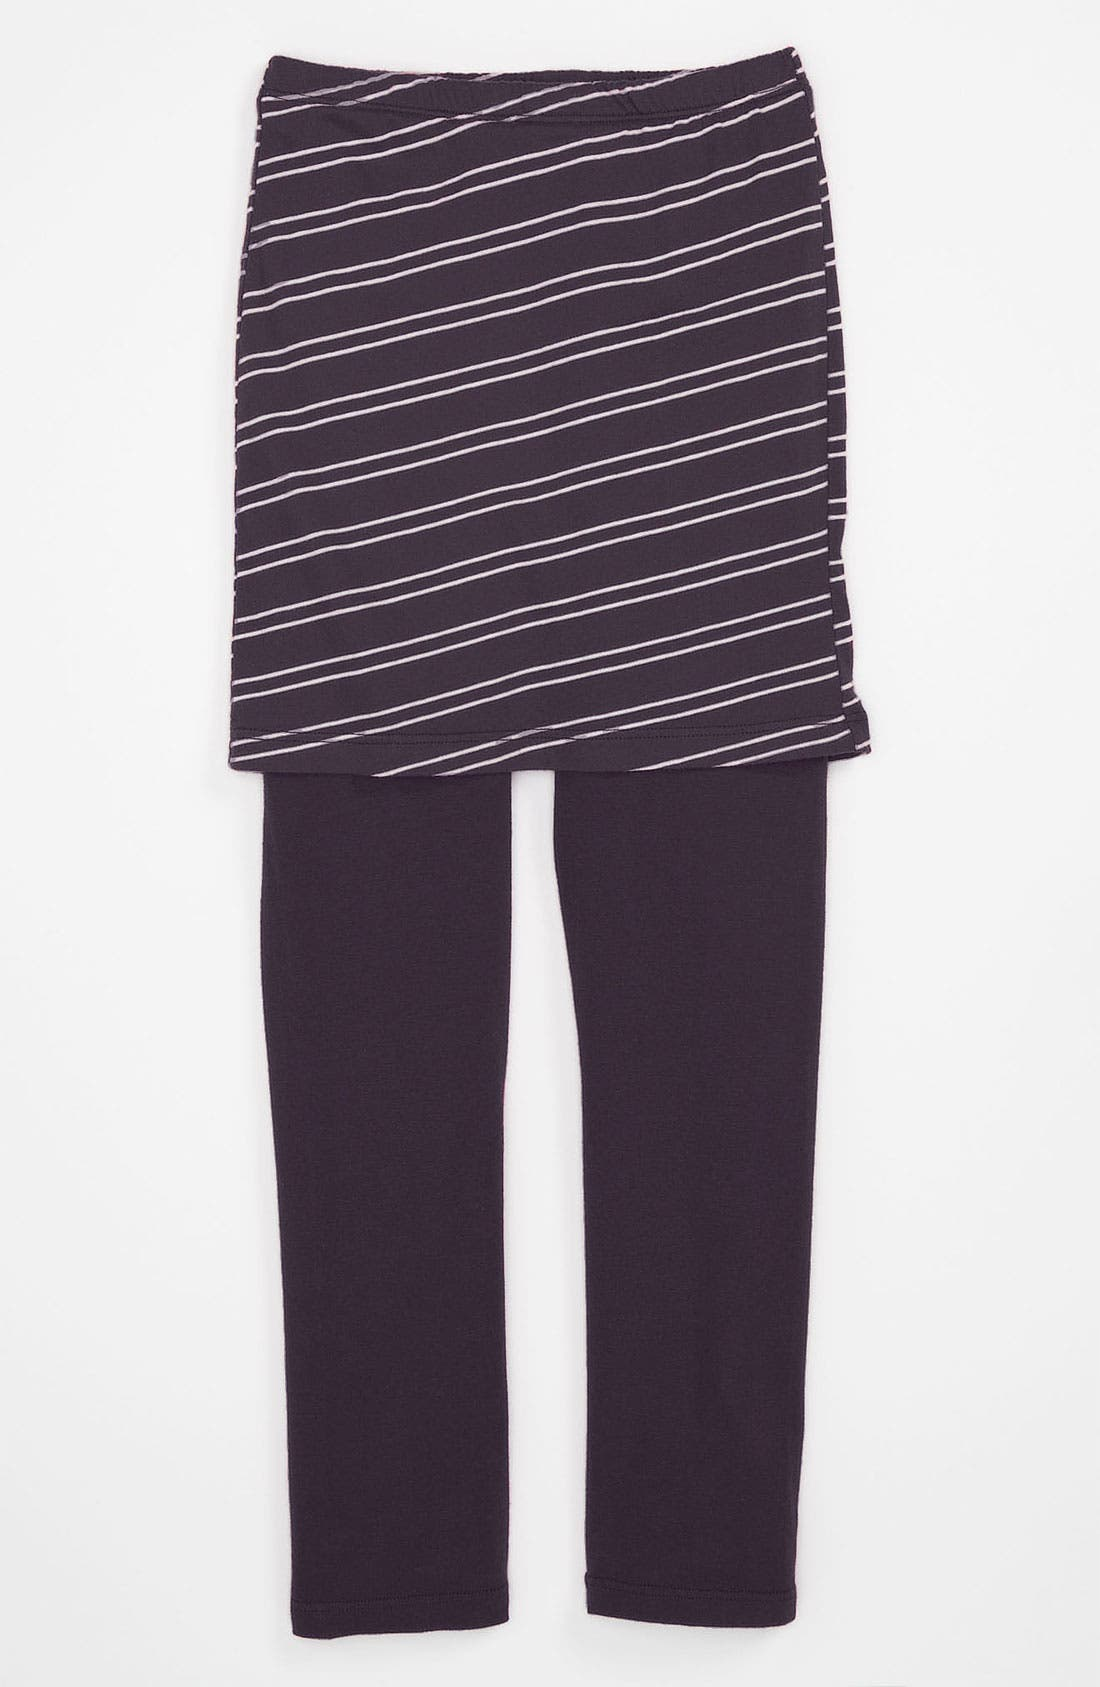 Main Image - Joah Love Stripe Skirt Leggings (Little Girls & Big Girls)